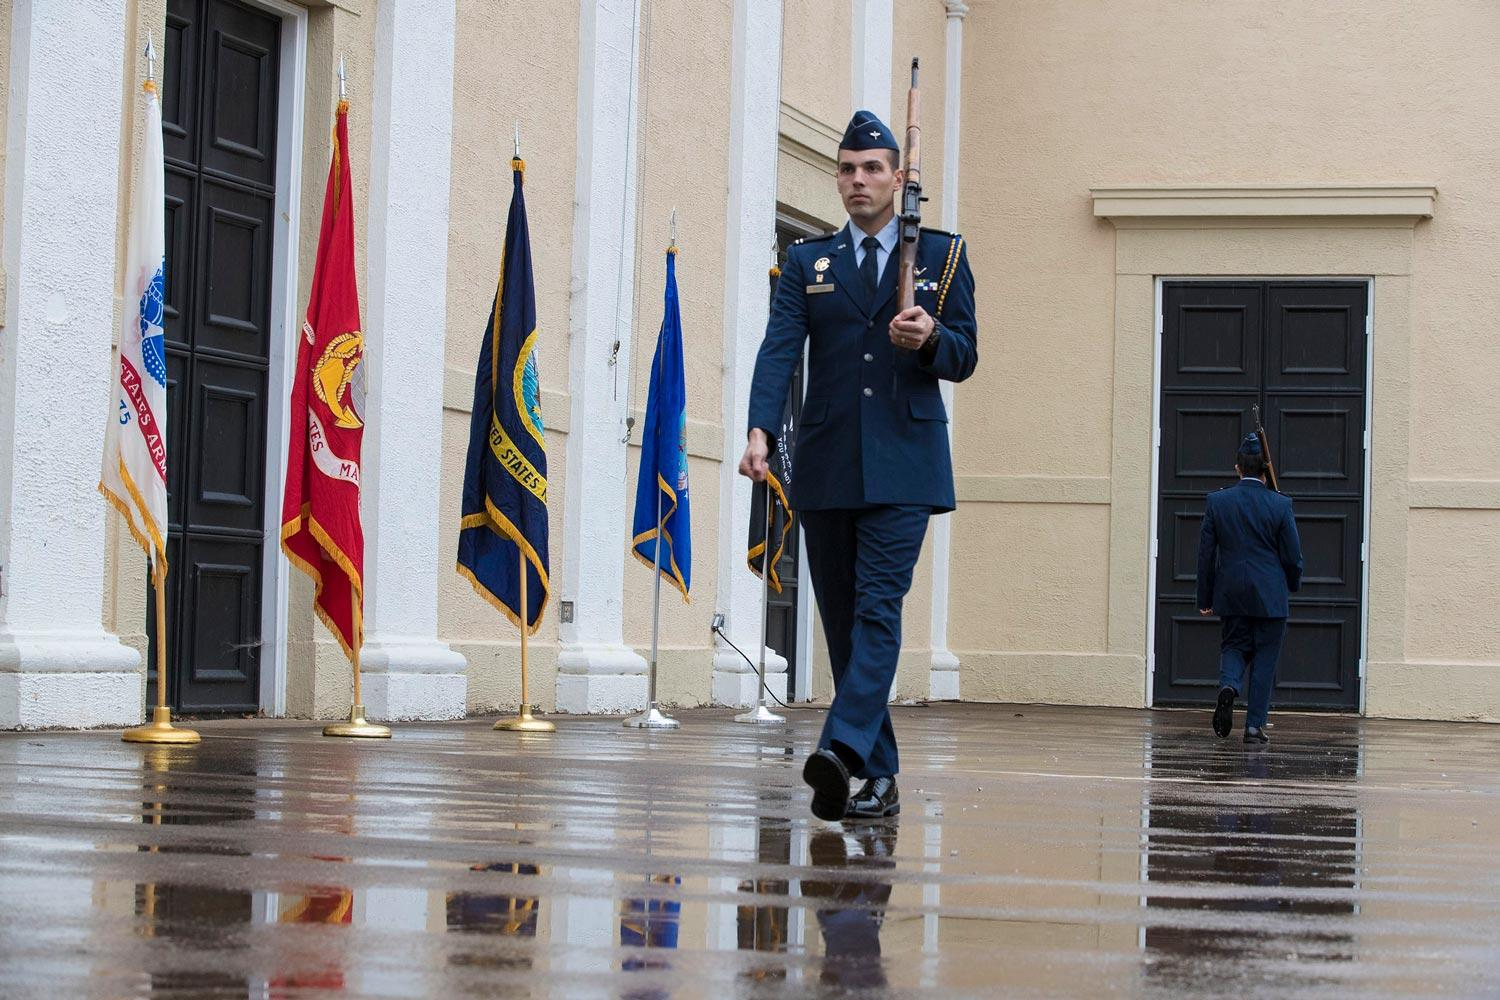 UVA ROTC students will march on the McIntire Amphitheater stage for 24 hours beginning Monday in remembrance of those who did not come back from battle.